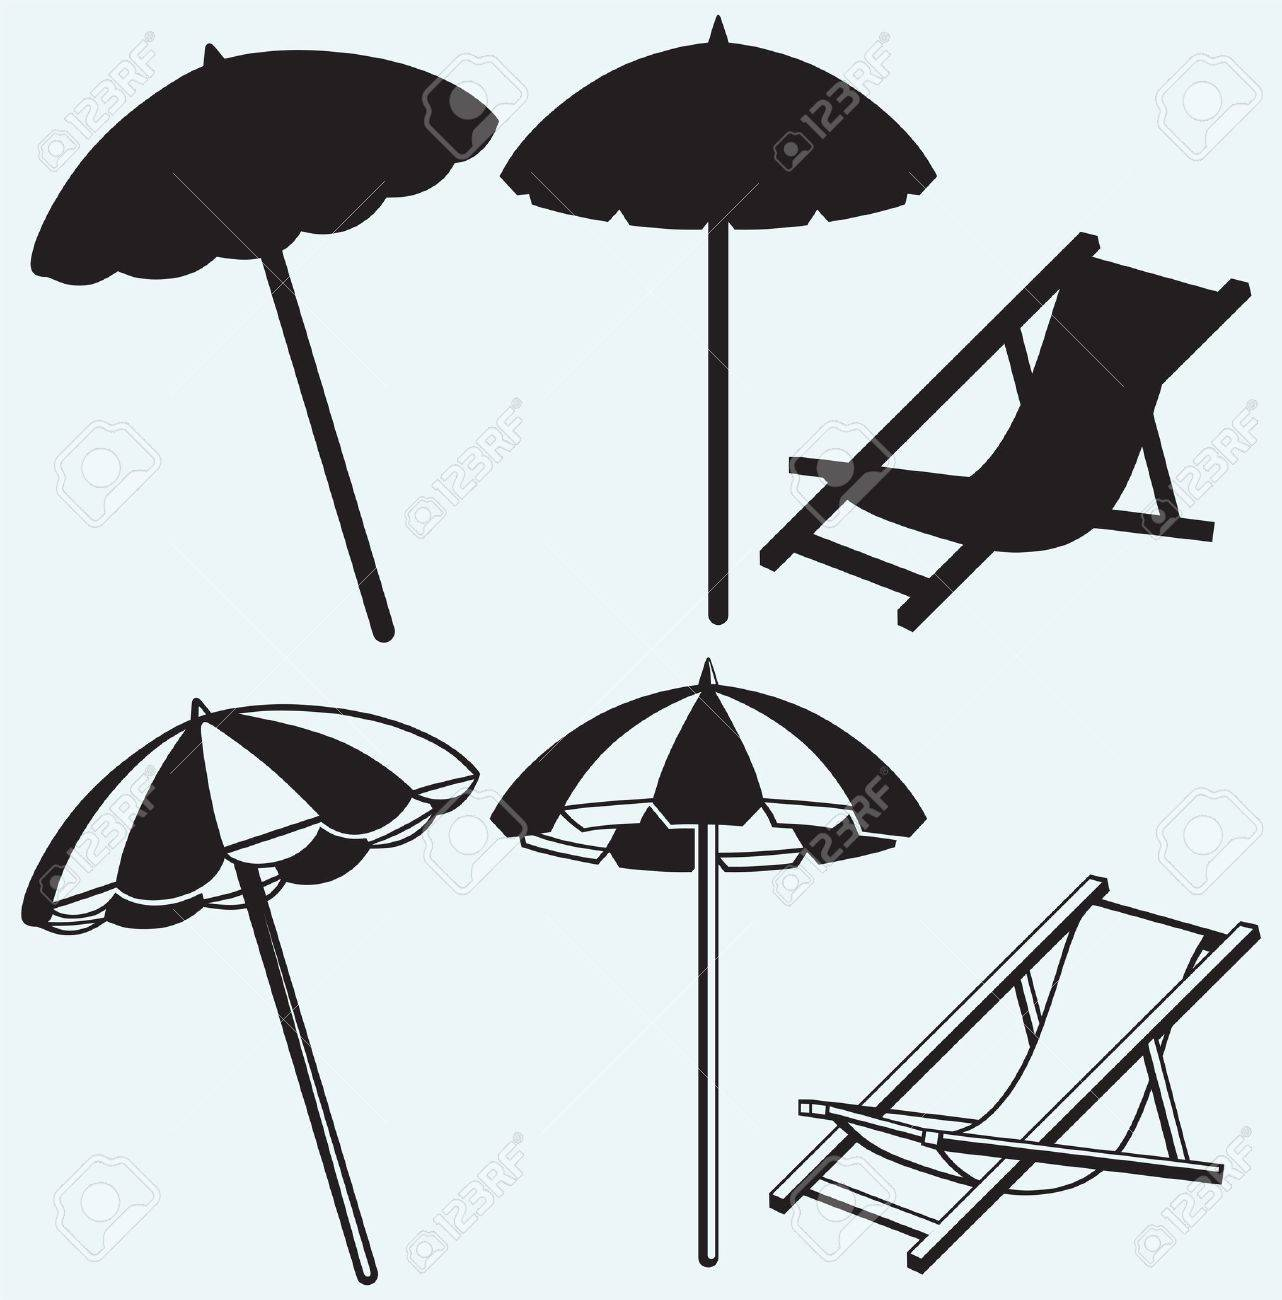 Chair beach umbrella and chair black and white - Chair And Beach Umbrella Isolated On Blue Background Stock Vector 21398427